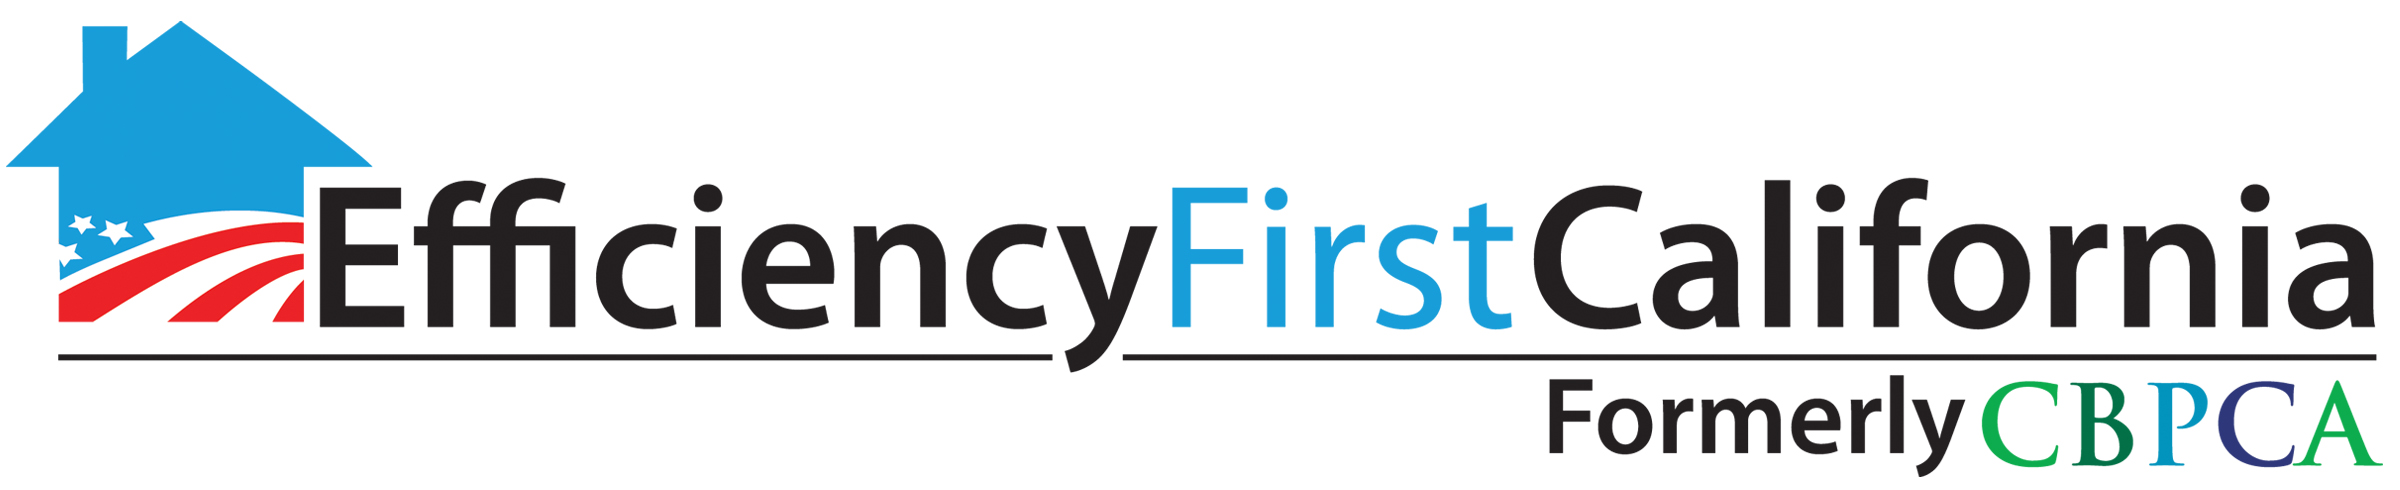 Efficiency First CBPCA logo